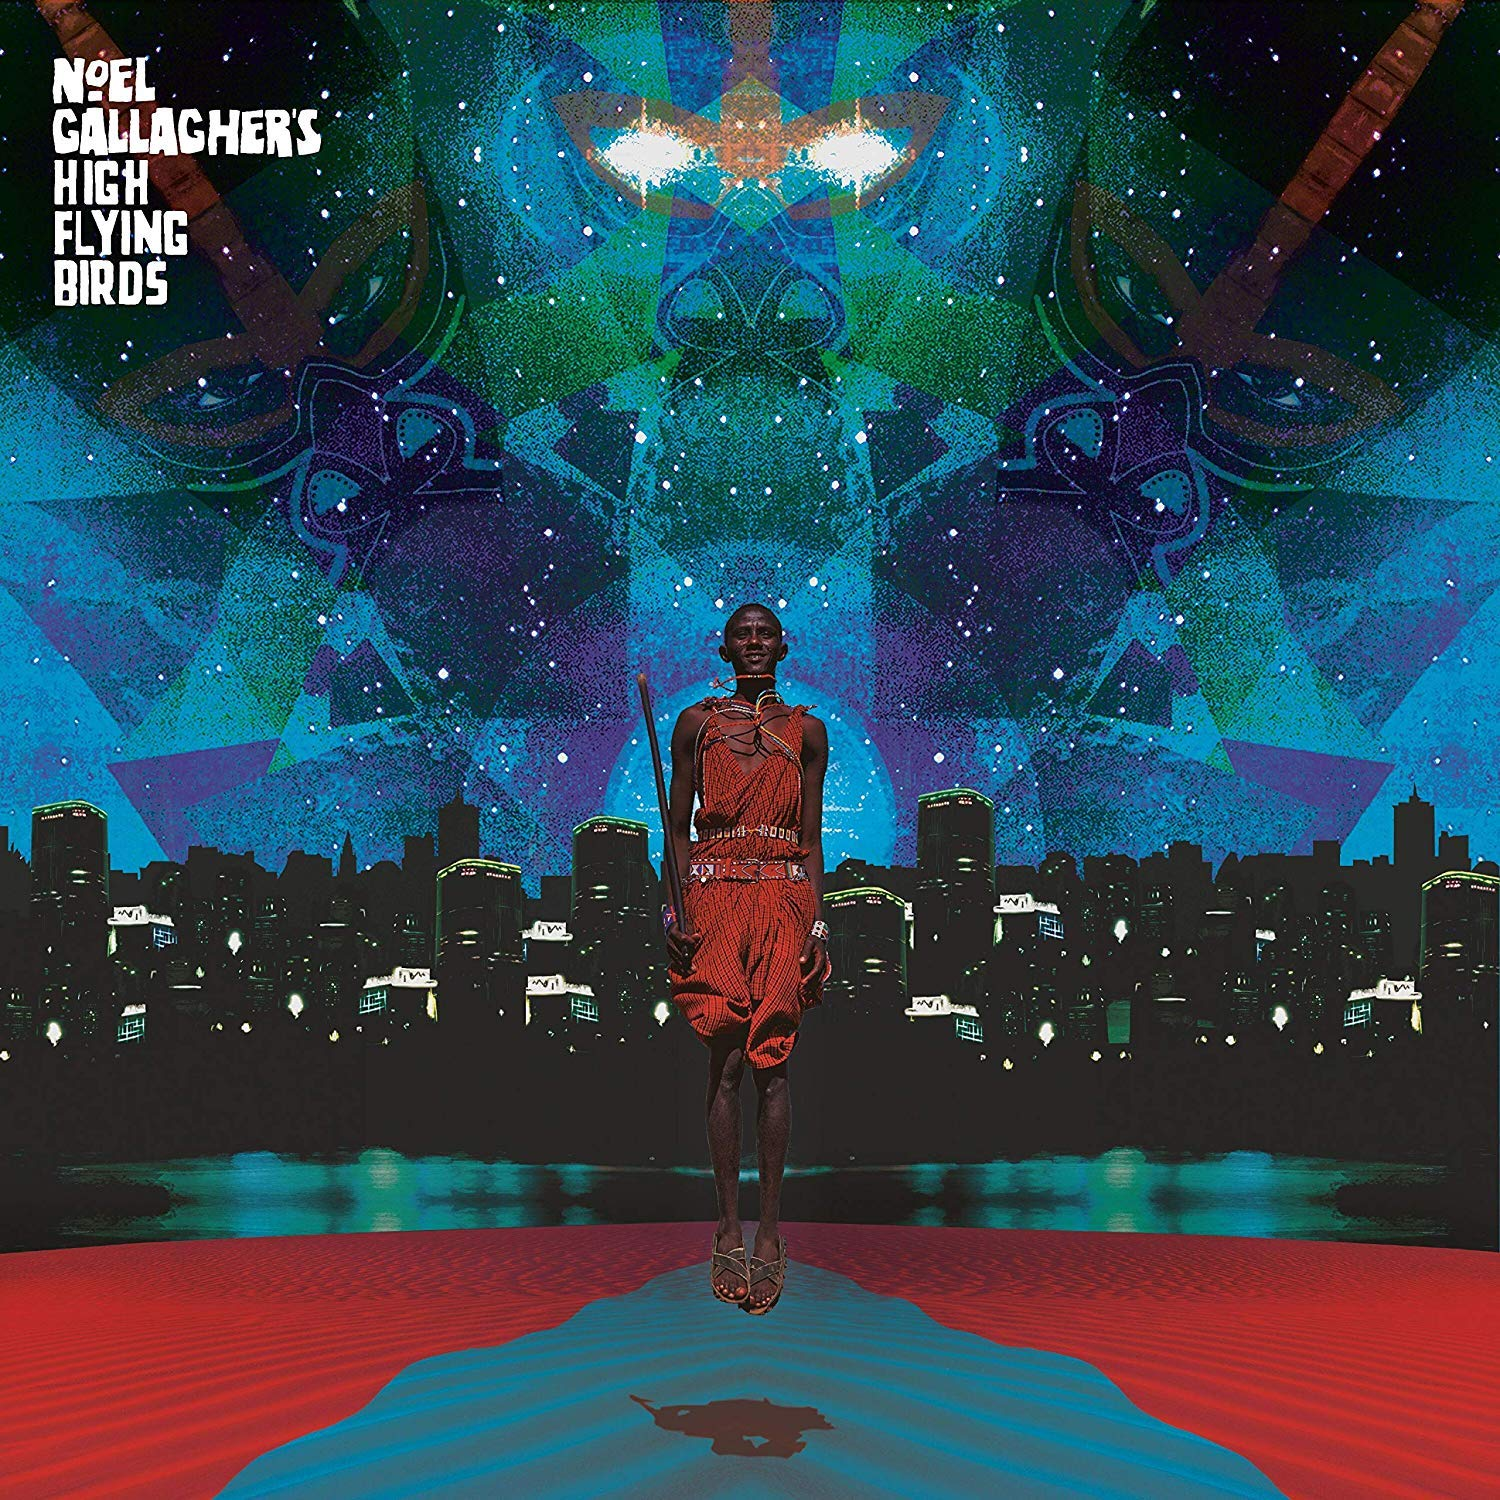 Noel Gallagher's High Flying Birds This is the Place EP artwork stream